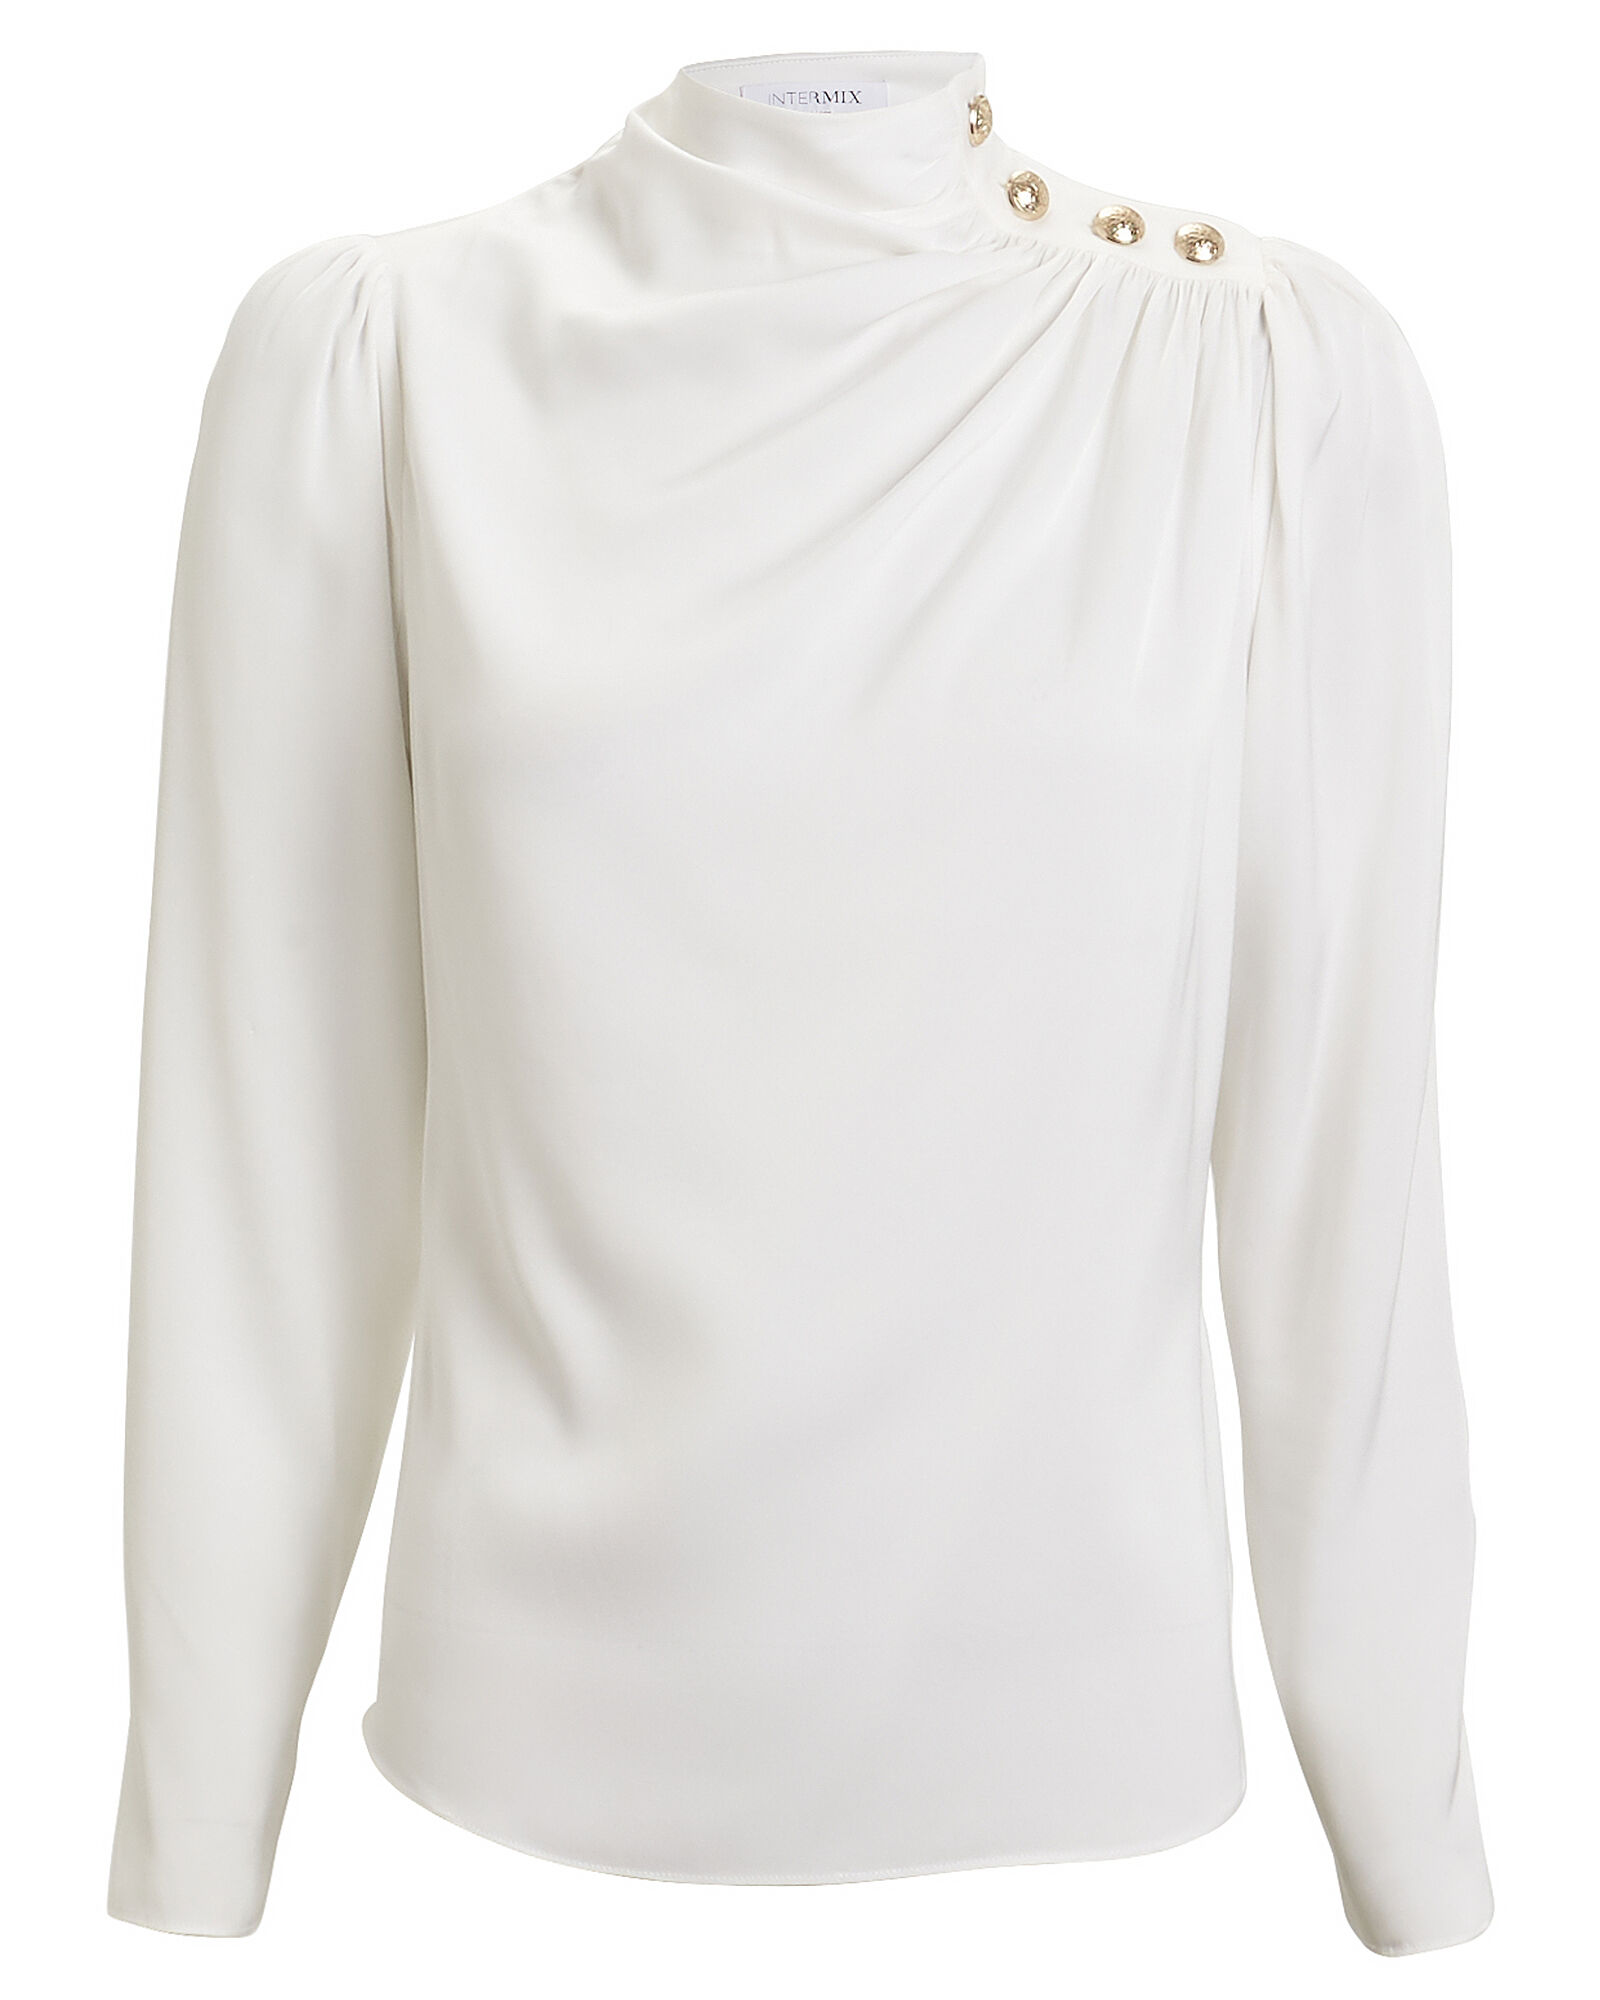 Monica Draped Silk Blouse, IVORY, hi-res